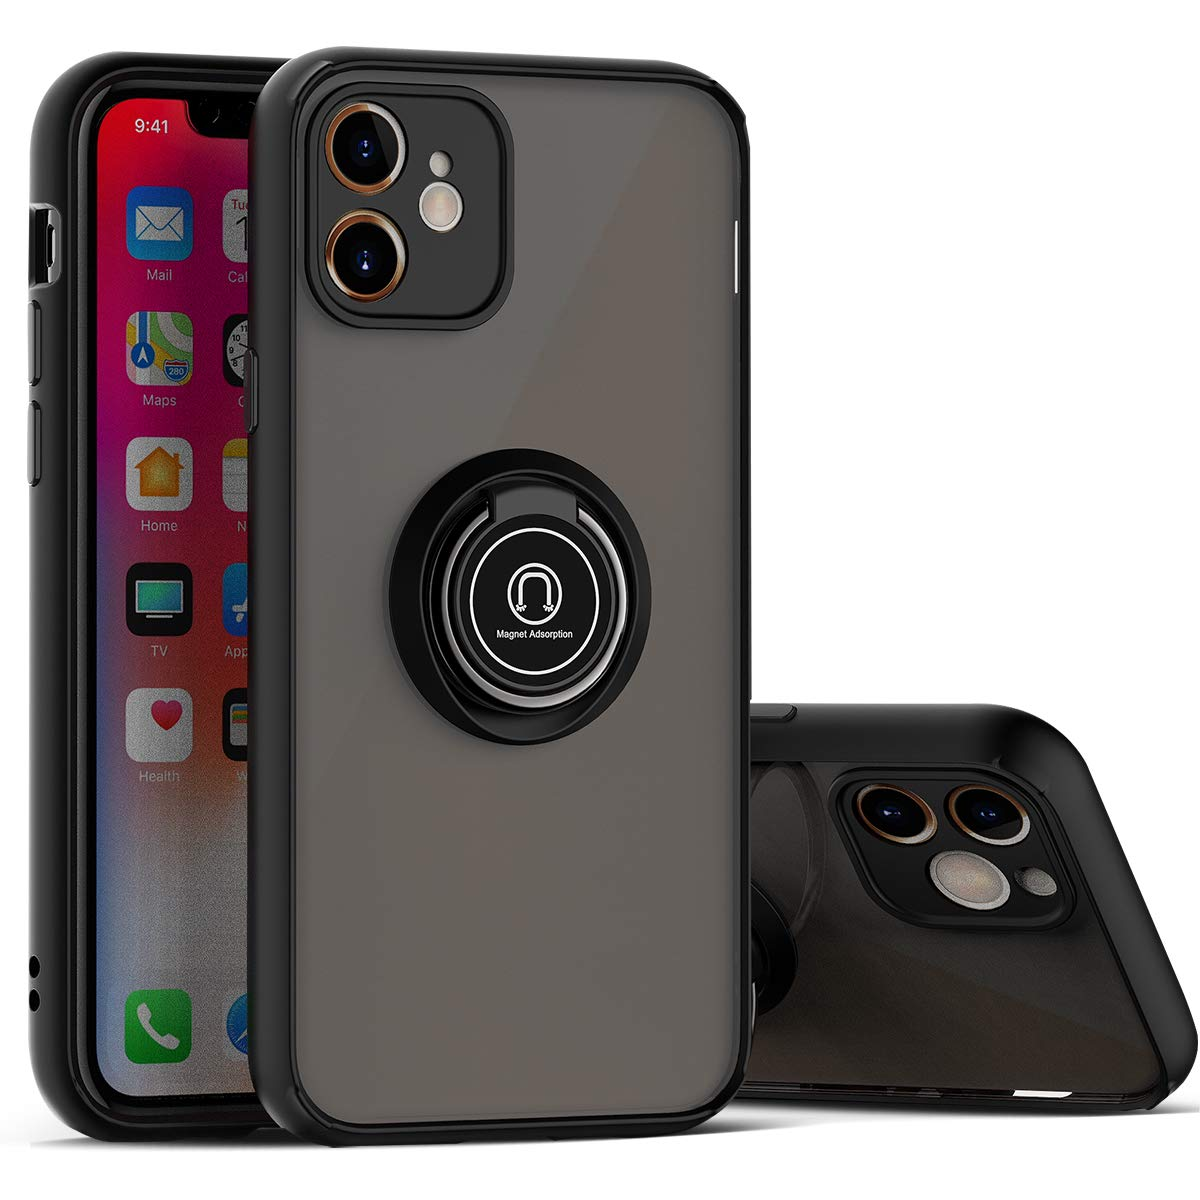 BIBERCAS iPhone 11 Case with Ring Holder,360° Rotation Magnetic Ring Grip Stand with Camera Lens Protector for iPhone 11,Slim Fit Matte Protective Shockproof iPhone 11 Cover Case 6.1 inch-Black